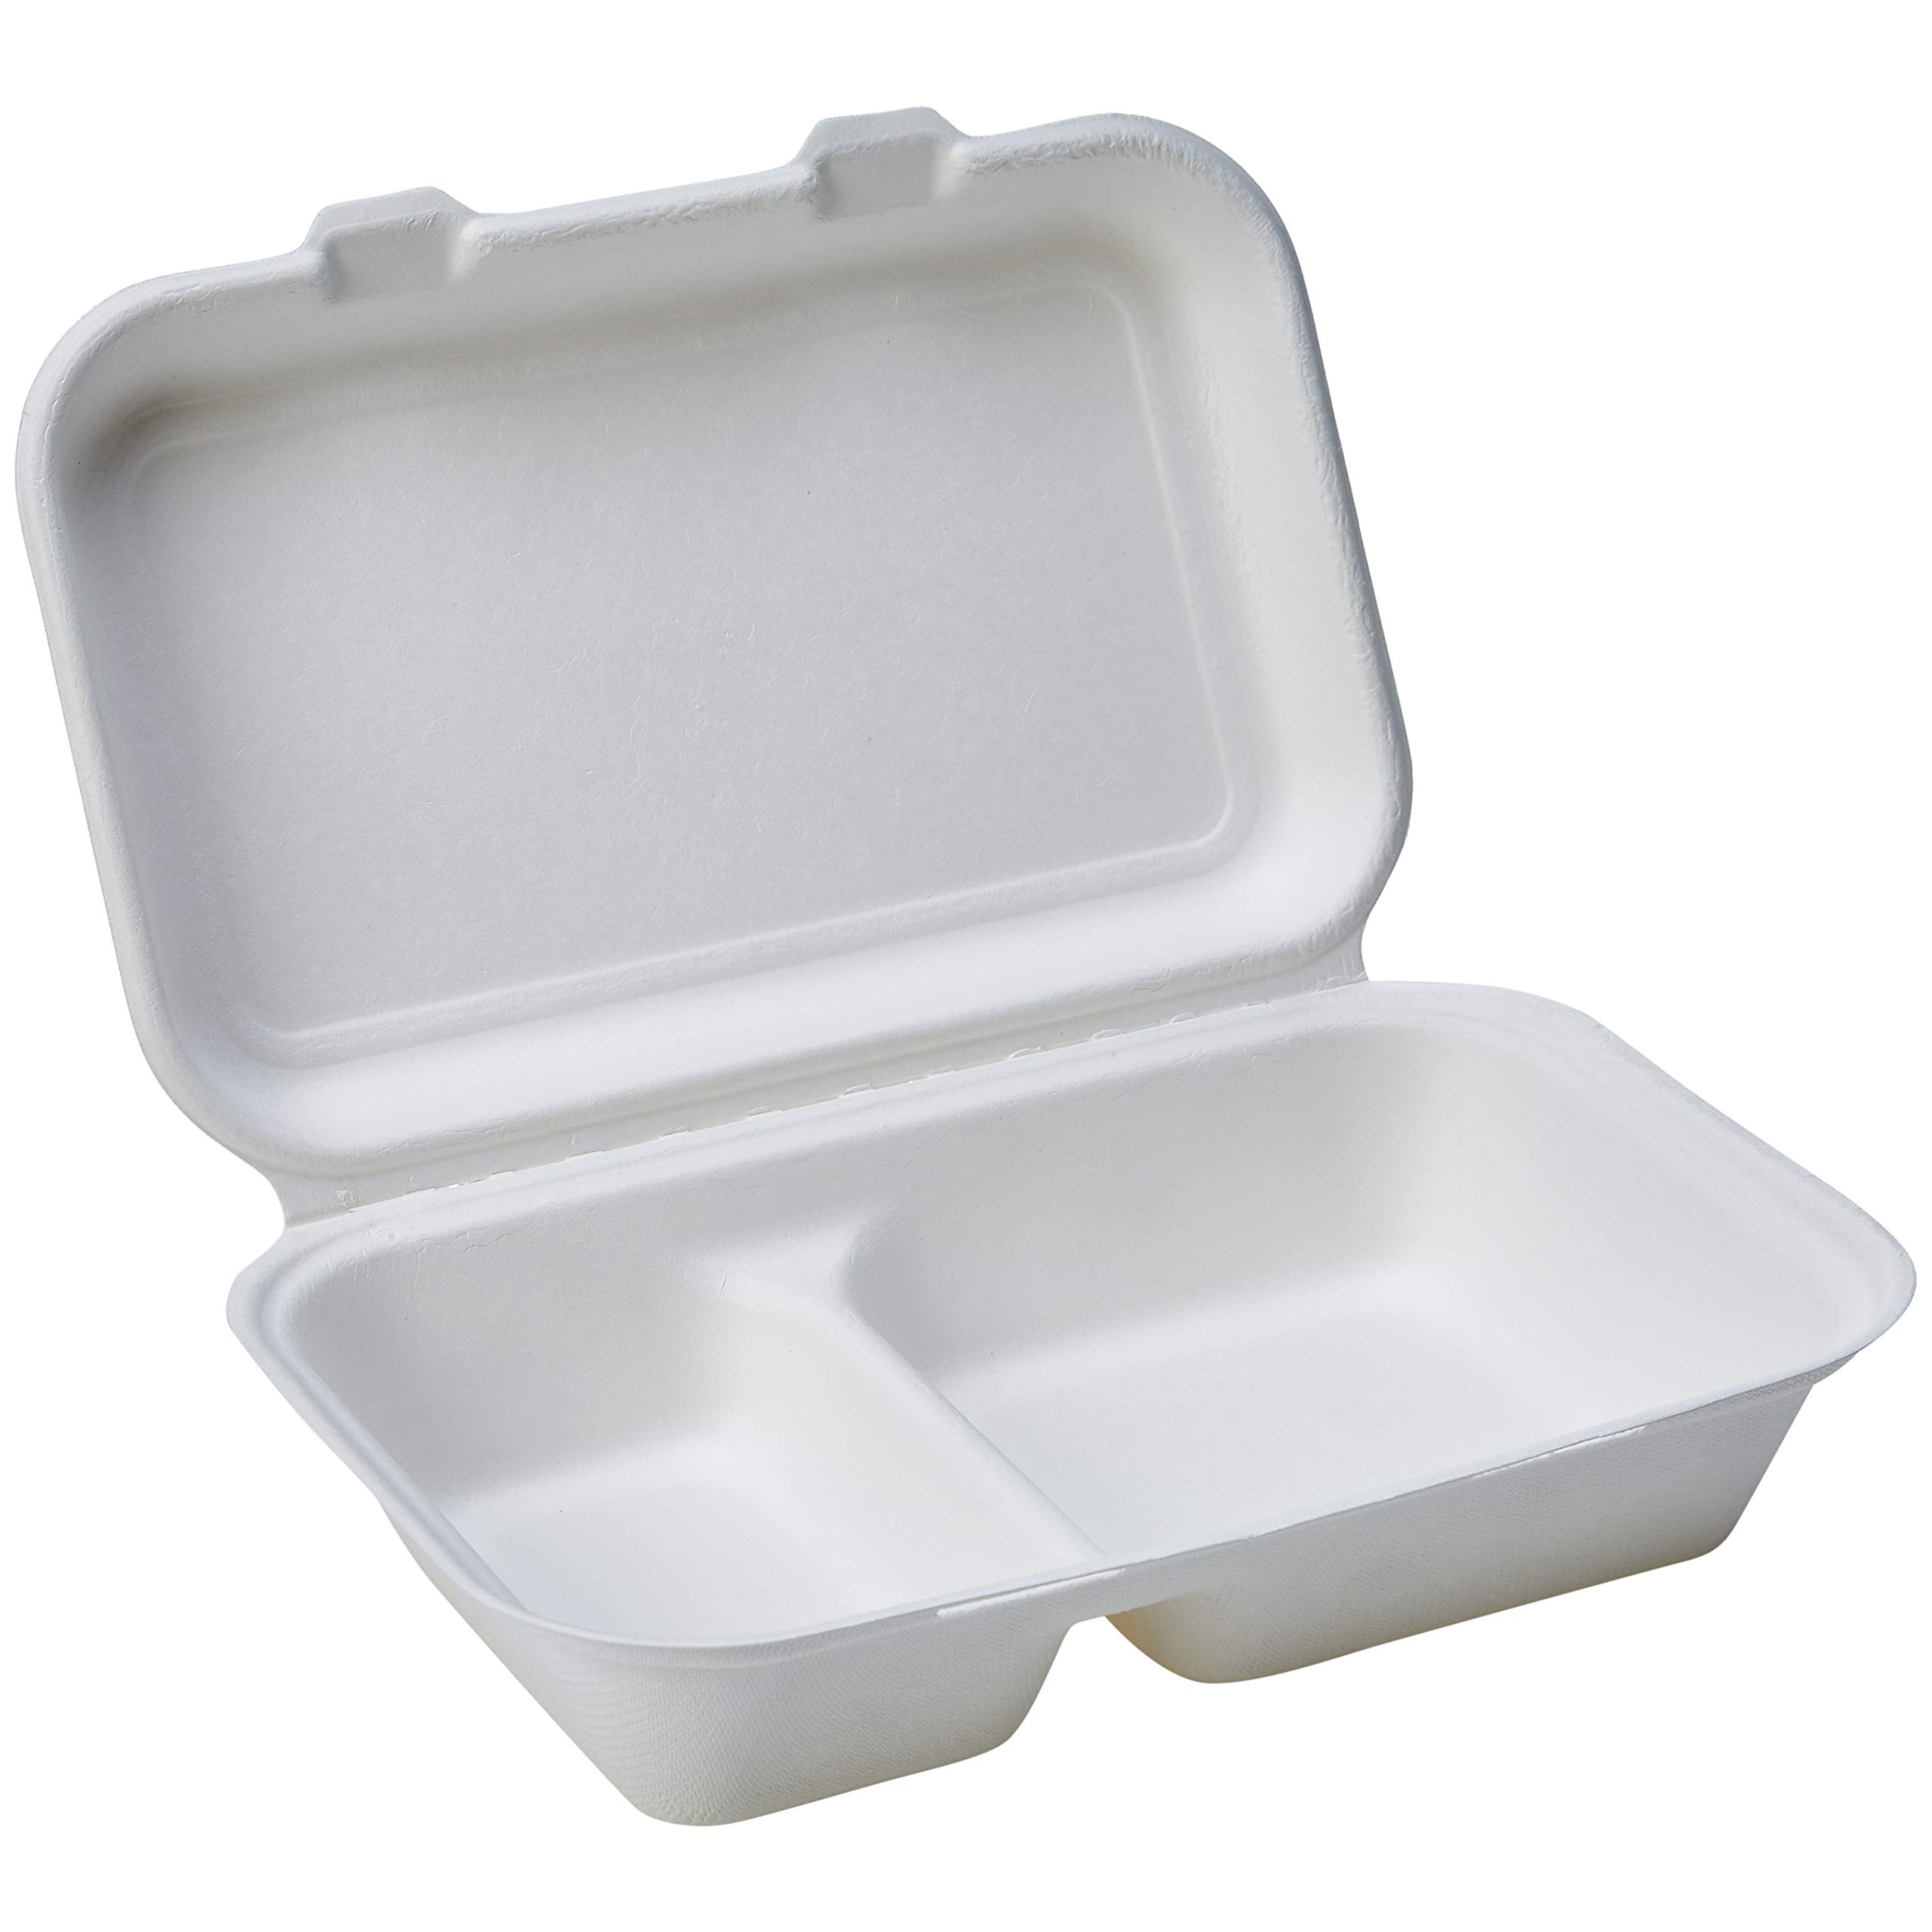 AmazonBasics Compostable Clamshell Hinged Food Container, 2-Compartment, 9.8 x 6.4 x 2.7 Inches, 250 Containers